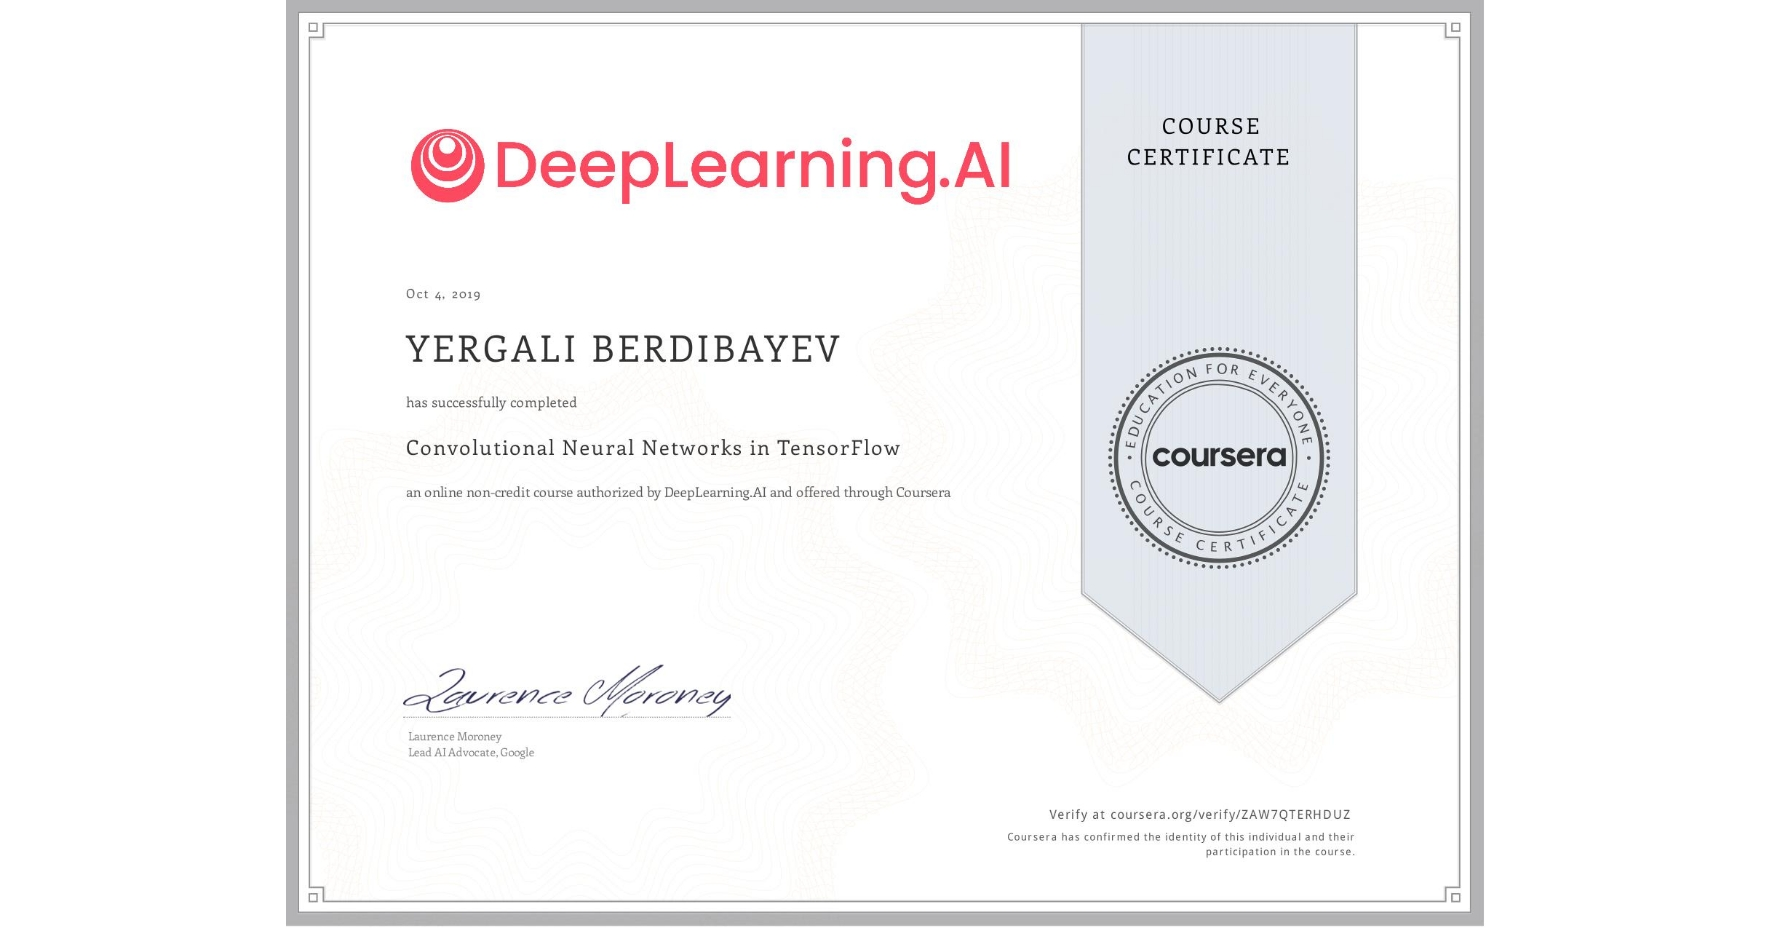 View certificate for Yergali Berdibayev, Convolutional Neural Networks in TensorFlow, an online non-credit course authorized by DeepLearning.AI and offered through Coursera